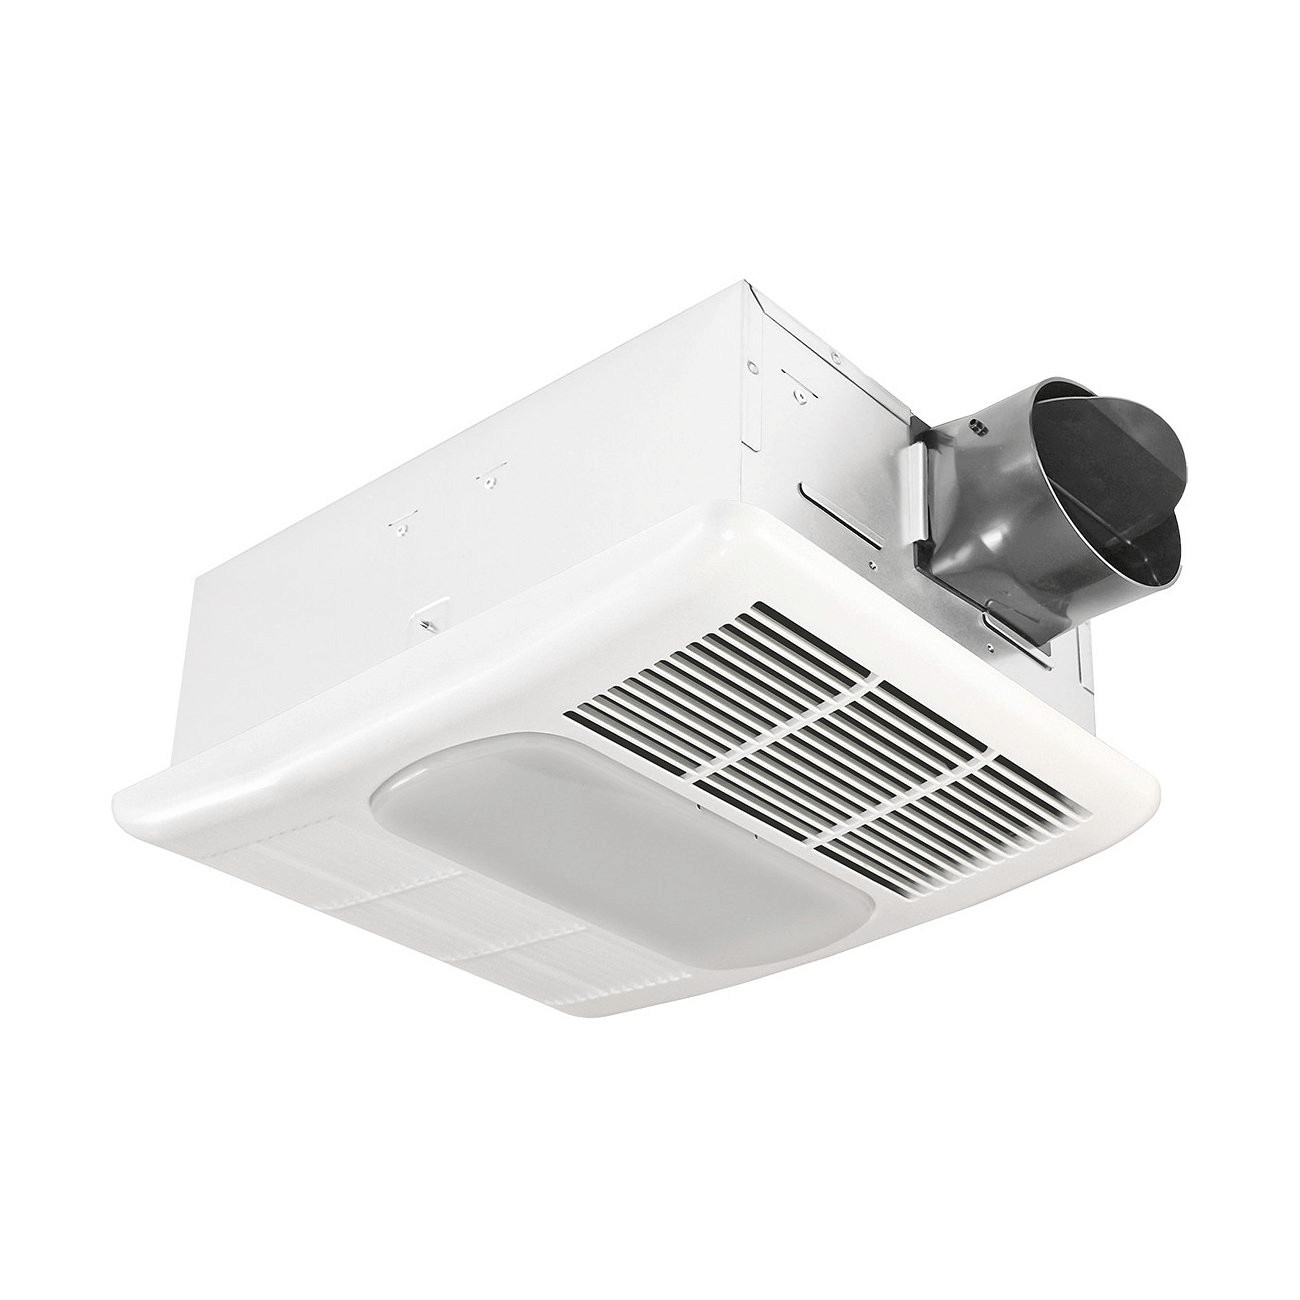 Bathroom Exhaust Fan With Heater  Amazing Tips on How to Clean a Bathroom Exhaust Fan in 10